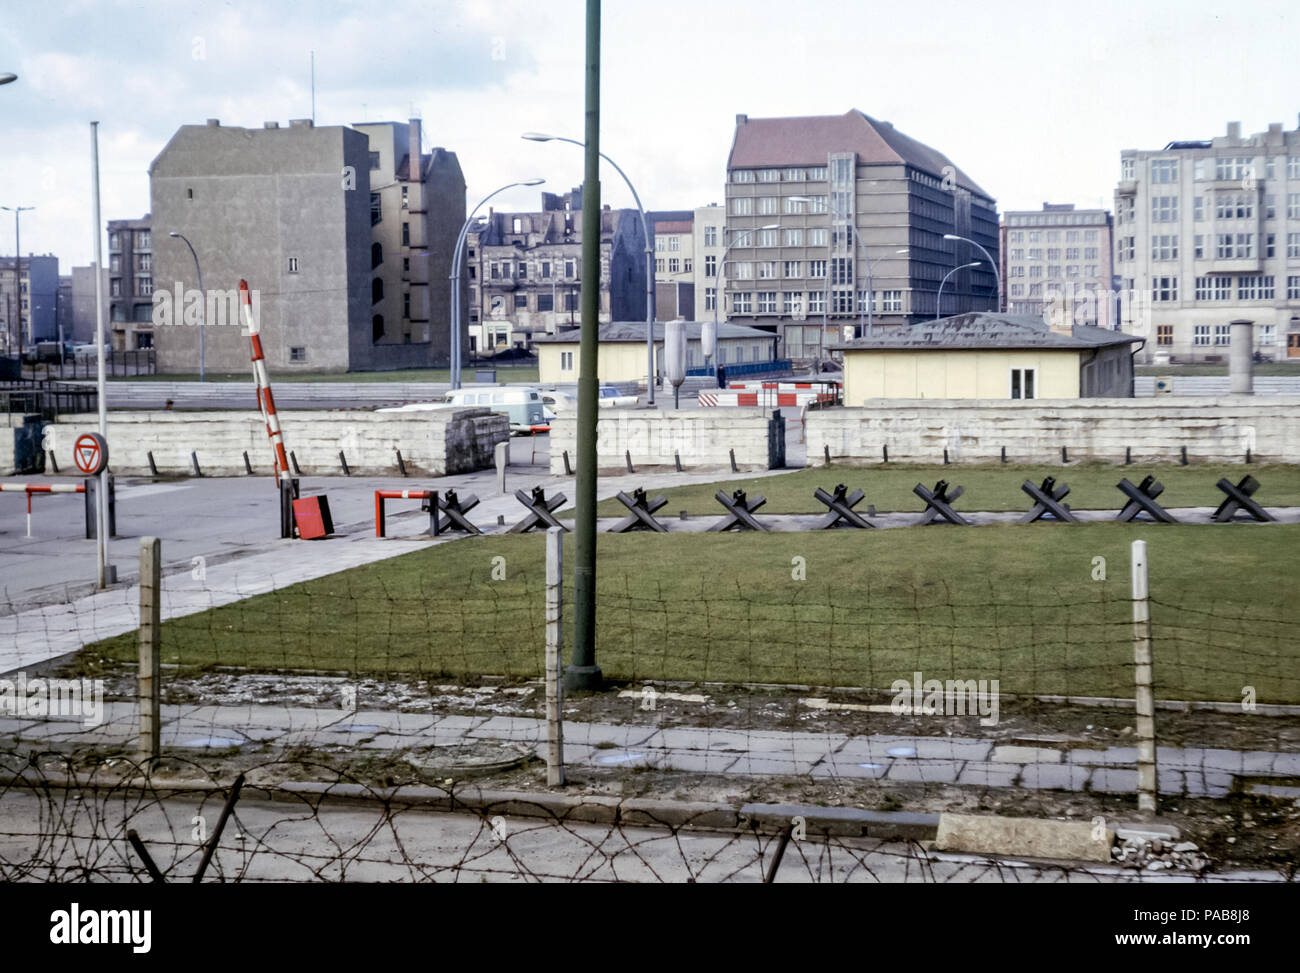 1960s view from East Berlin over Berlin Wall with Czech hedgehog barriers to West Berlin, Germany. Digital conversion of slide taken in 1964 - Stock Image